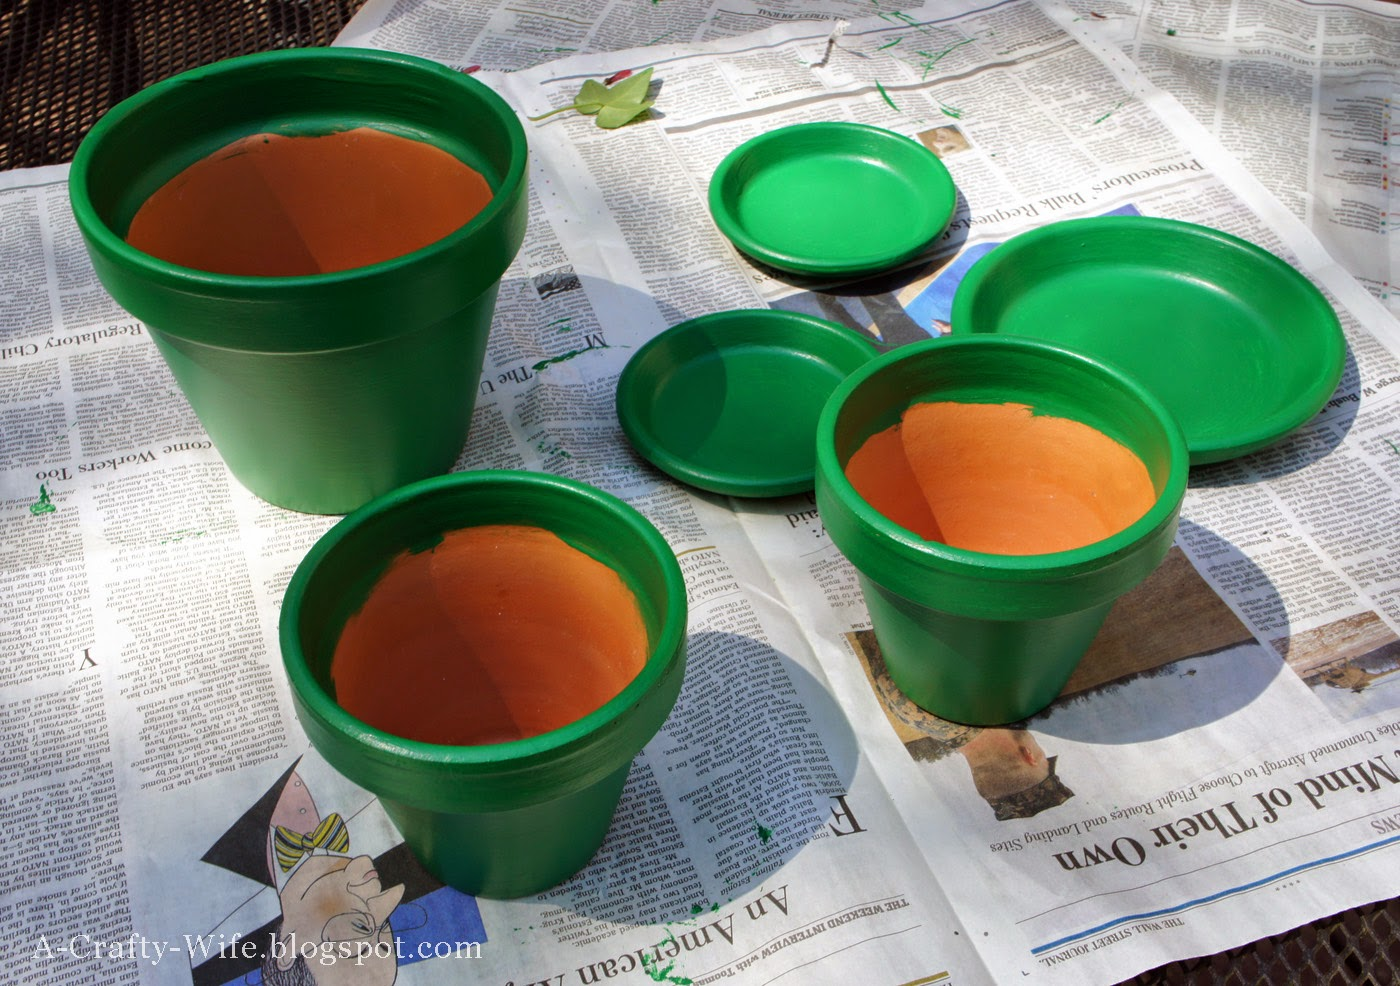 Small terra cotta pots painted with latex paint and then stenciled | A Crafty Wife